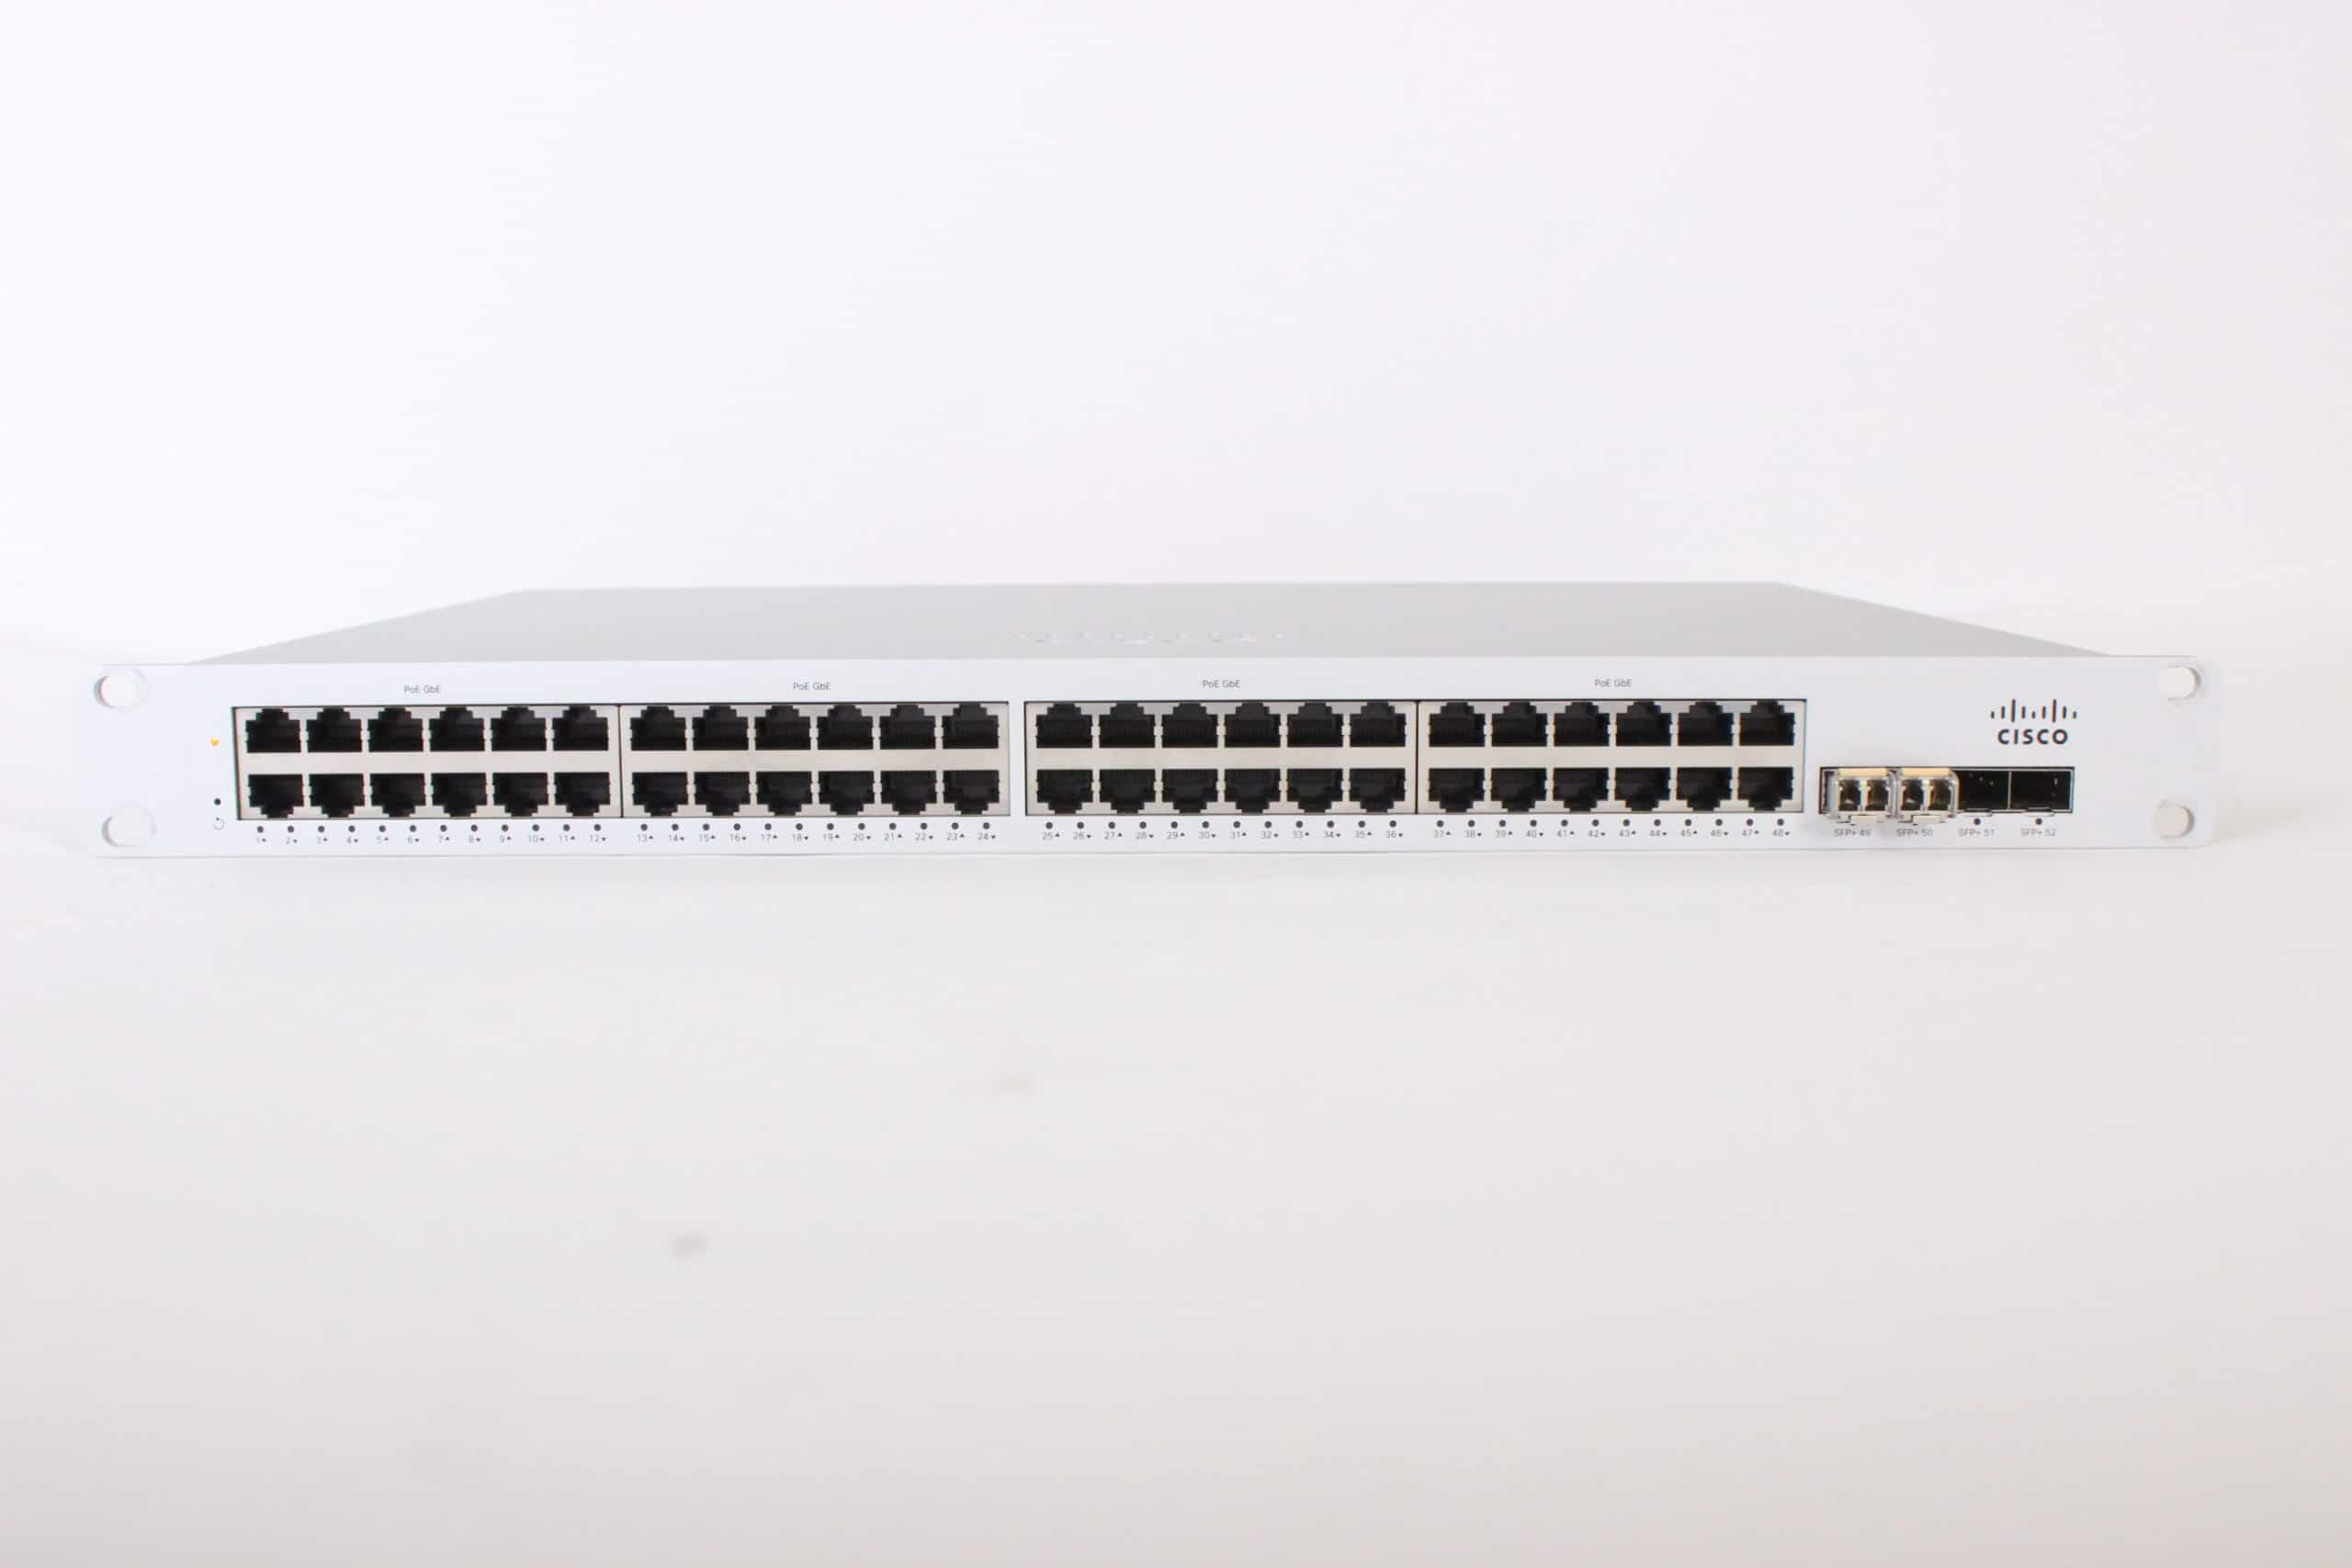 cisco-ms225-48fp-cloud-managed-stackable-switching-designed-for-the-branch-cosmetic-wear main